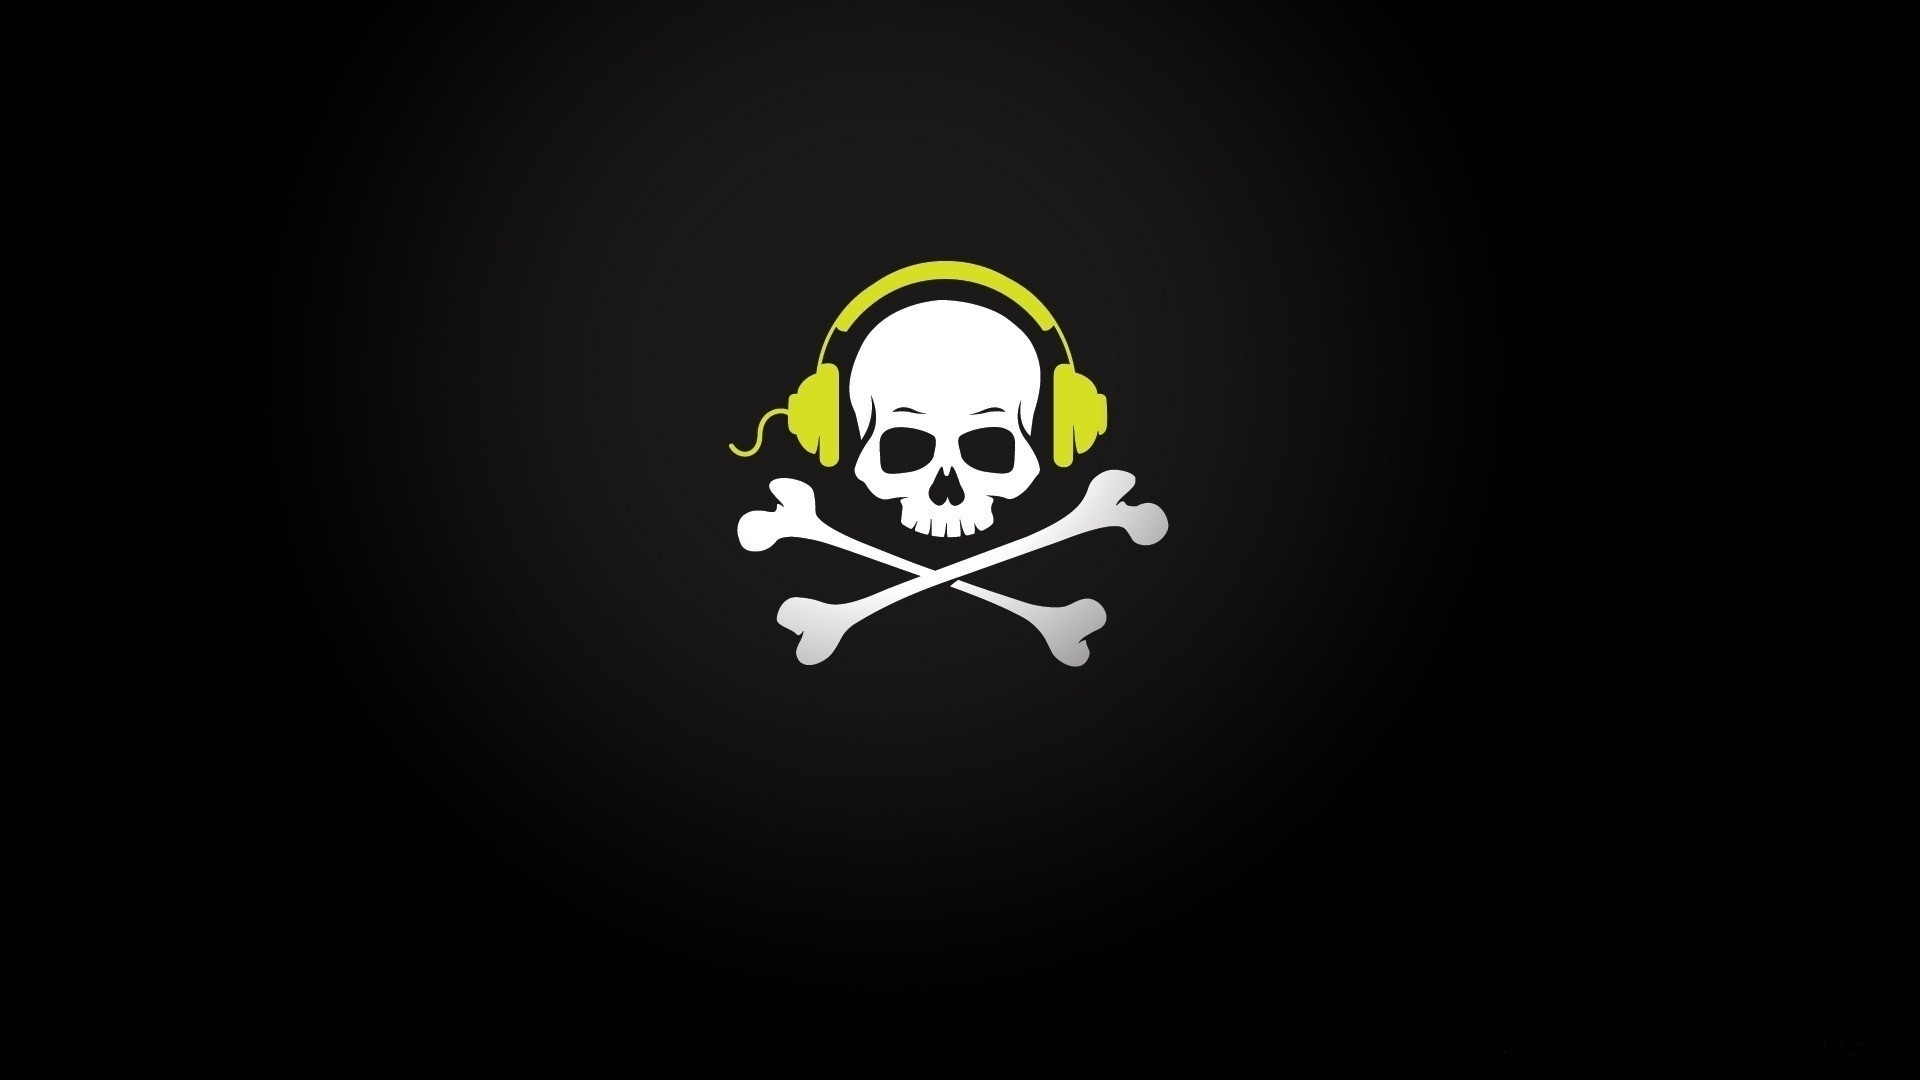 General 1920x1080 skull and bones headphones gradient minimalism skull